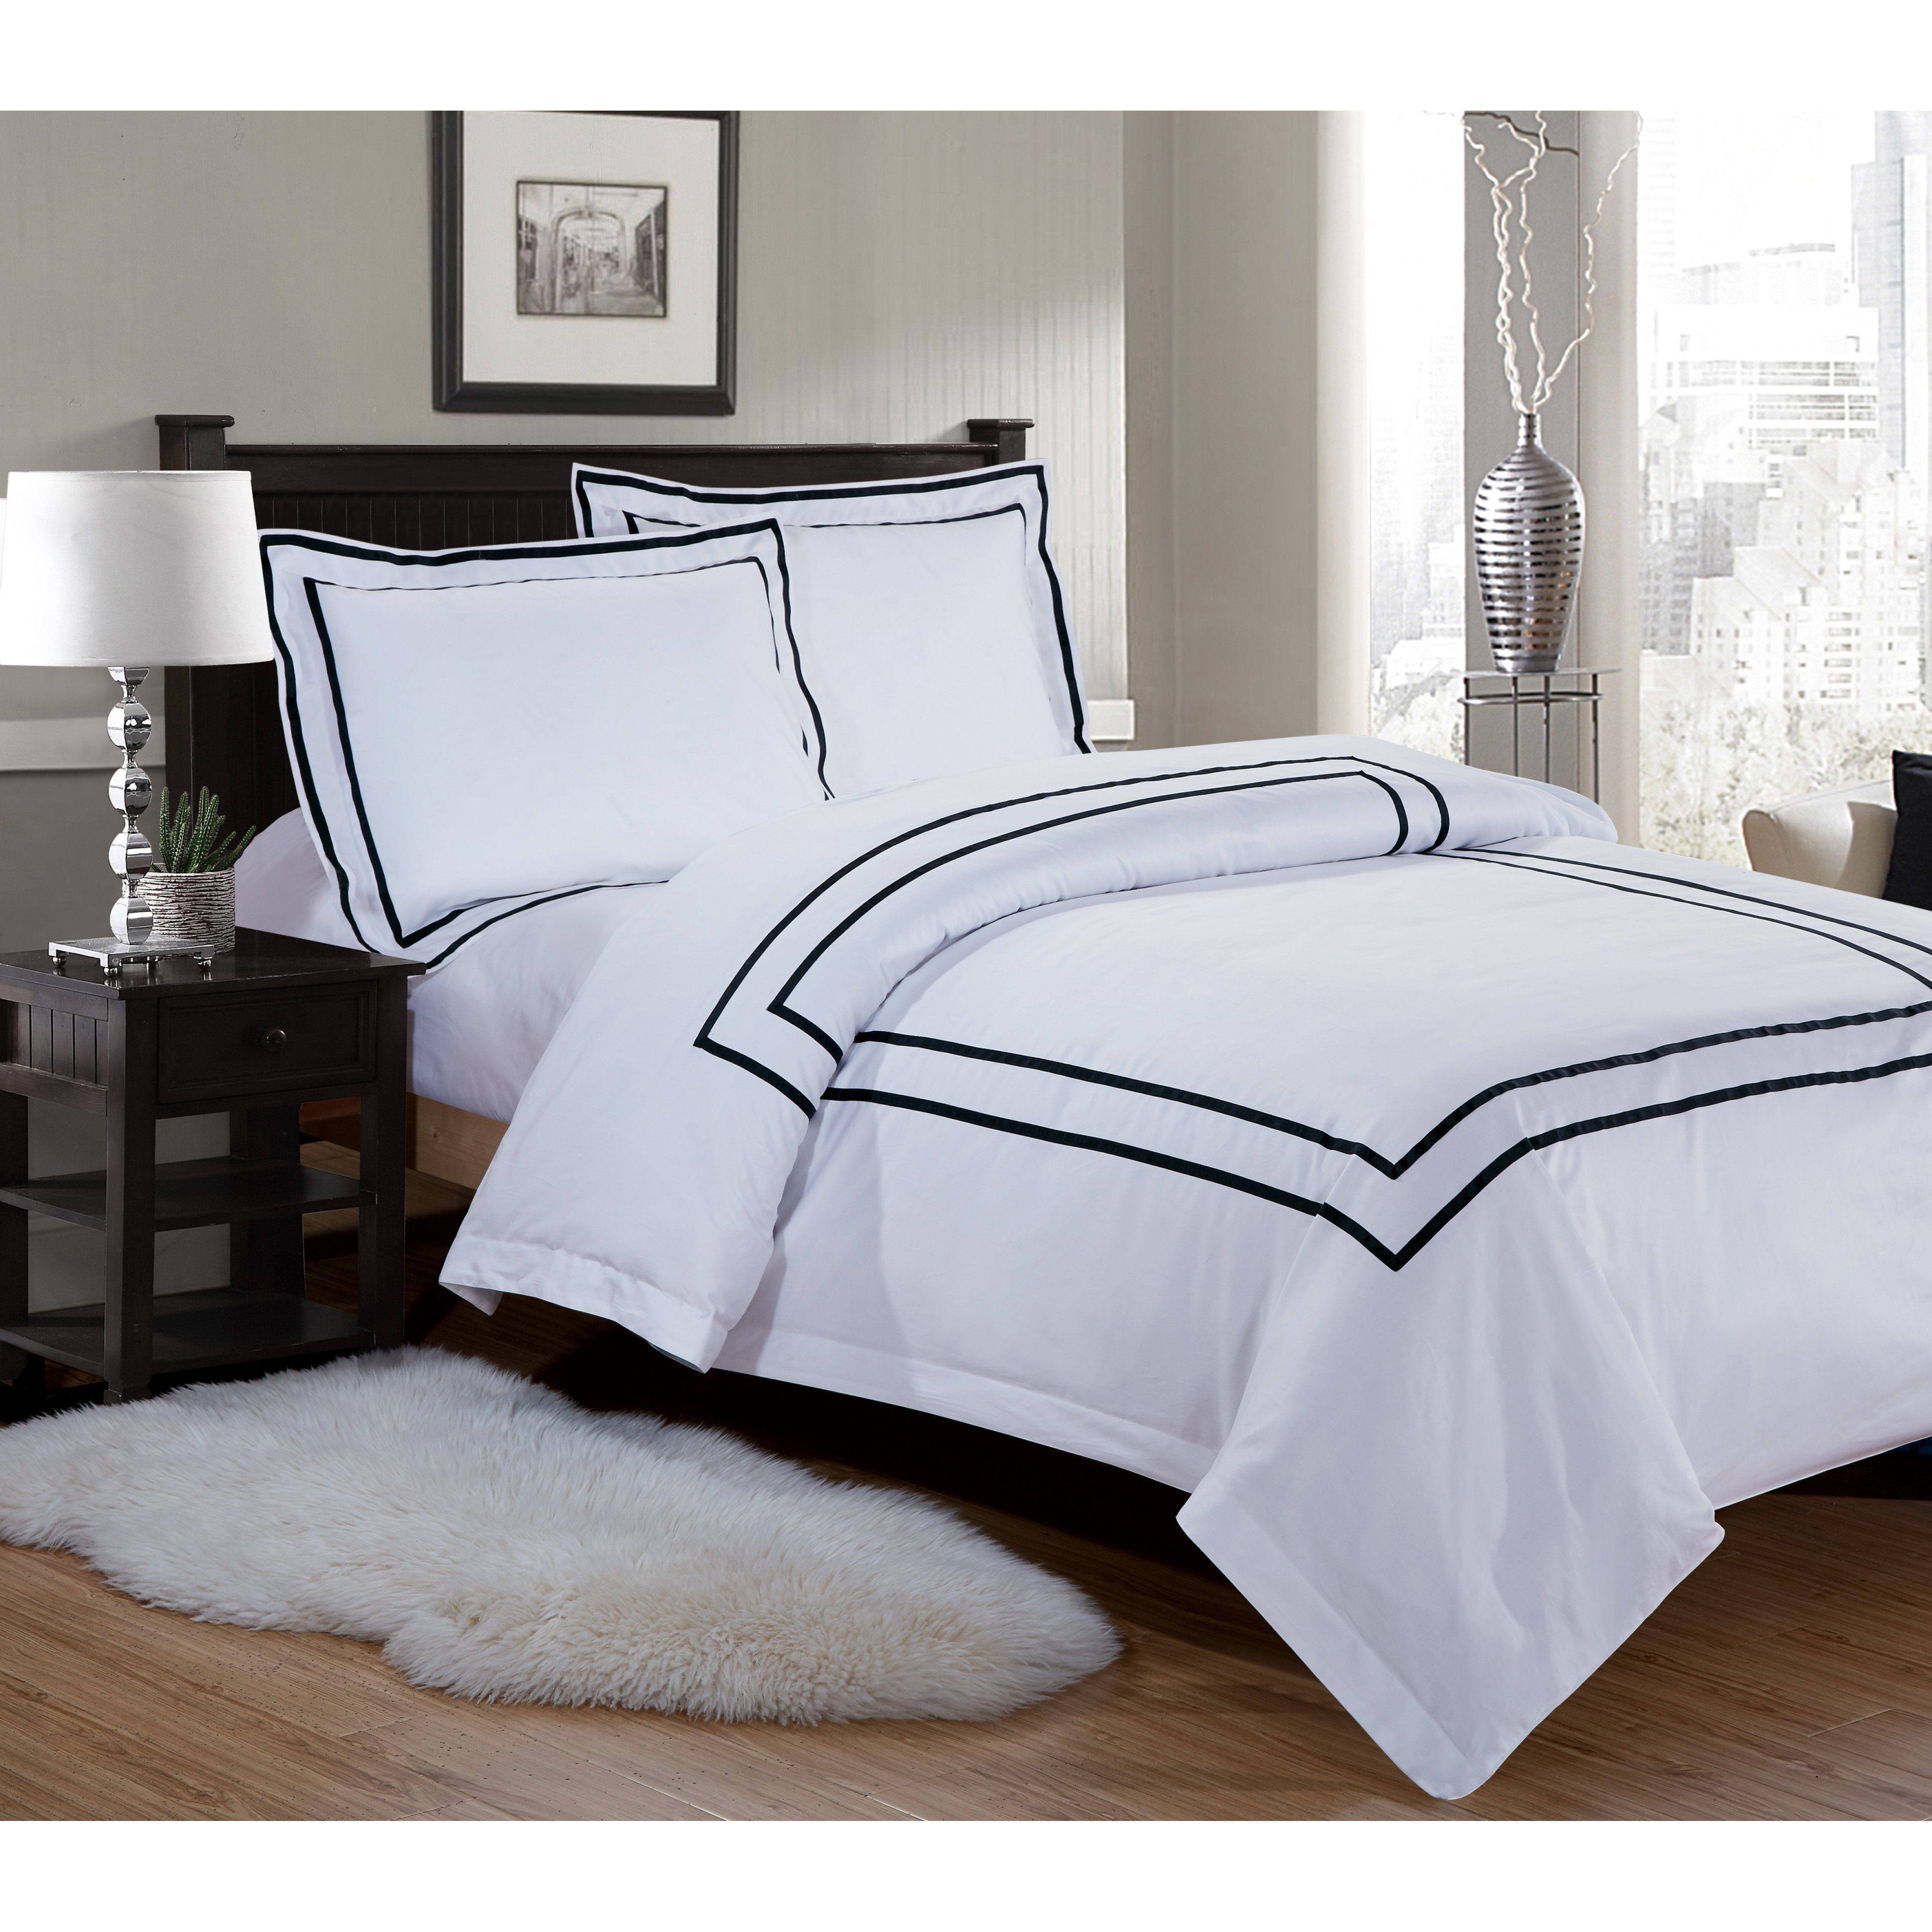 Royal Hotel Collection Border Series Double Black Bed